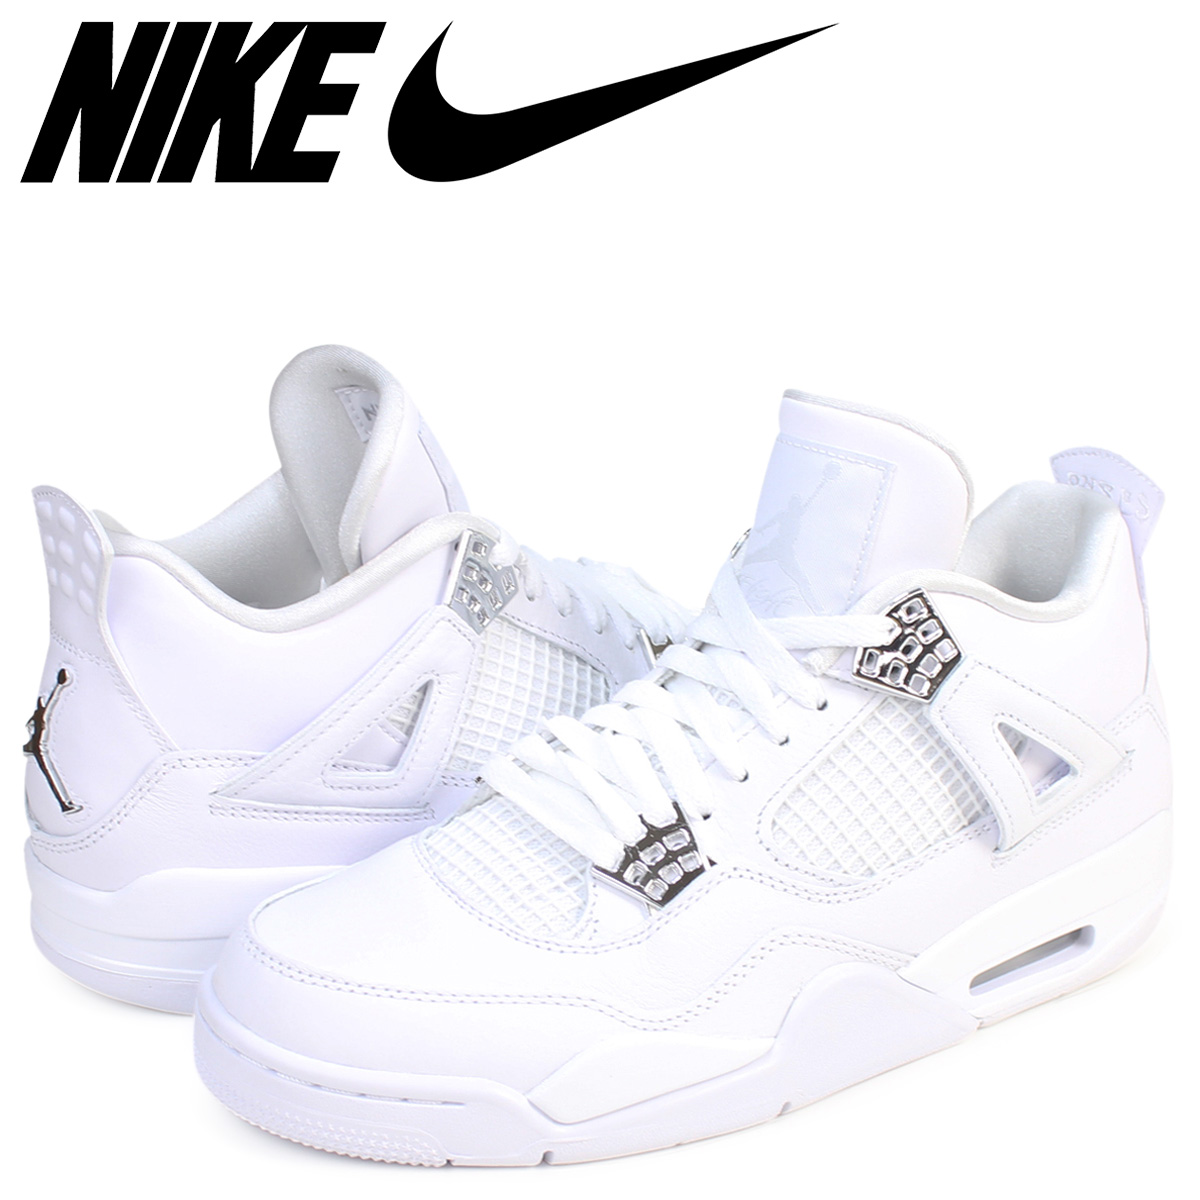 NIKE AIR JORDAN 4 RETRO PURE MONEY Nike Air Jordan 4 nostalgic sneakers men  308,497-100 white